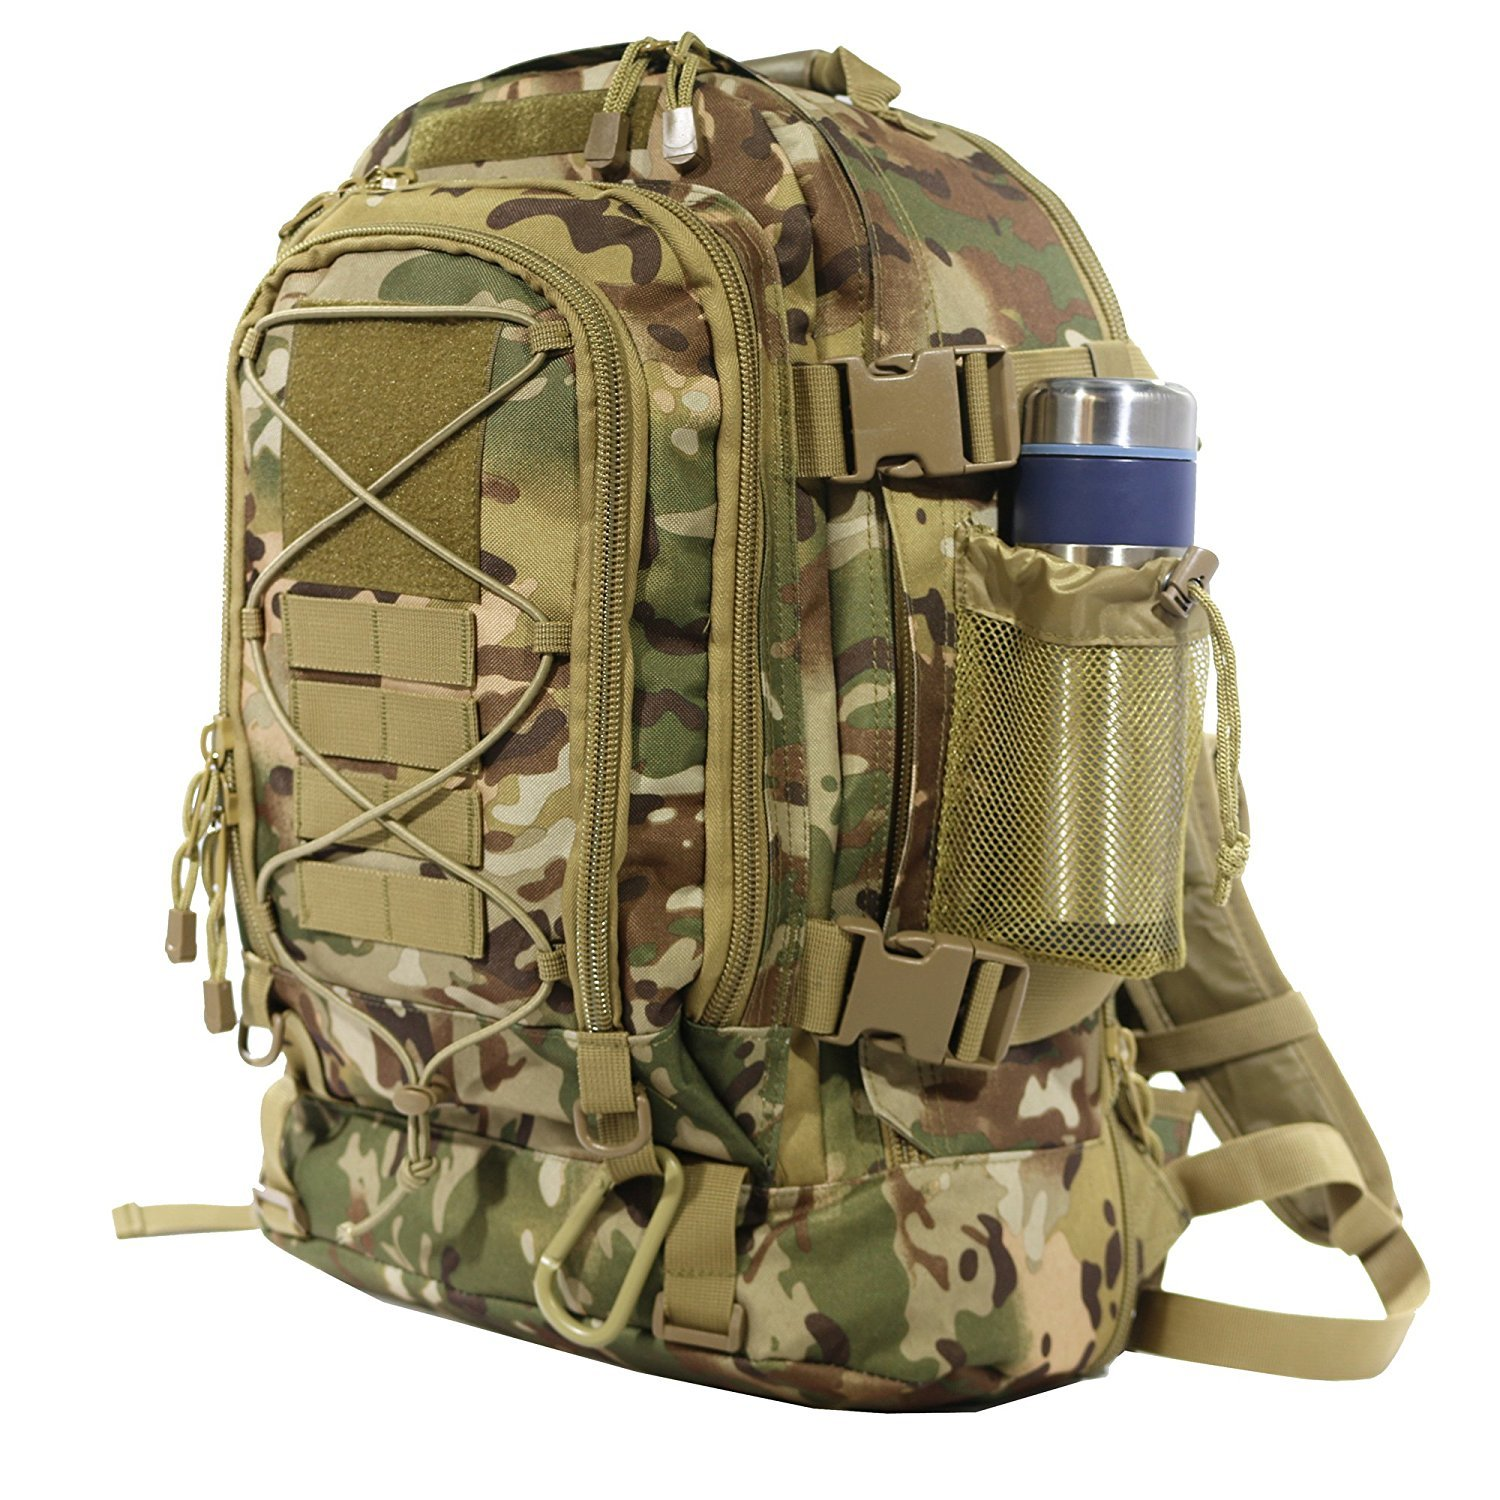 ARMYCAMOUSA 40L Outdoor Expandable Tactical Backpack Military Sport Camping Hiking Trekking Bag (08001 Multicam) by ARMYCAMOUSA